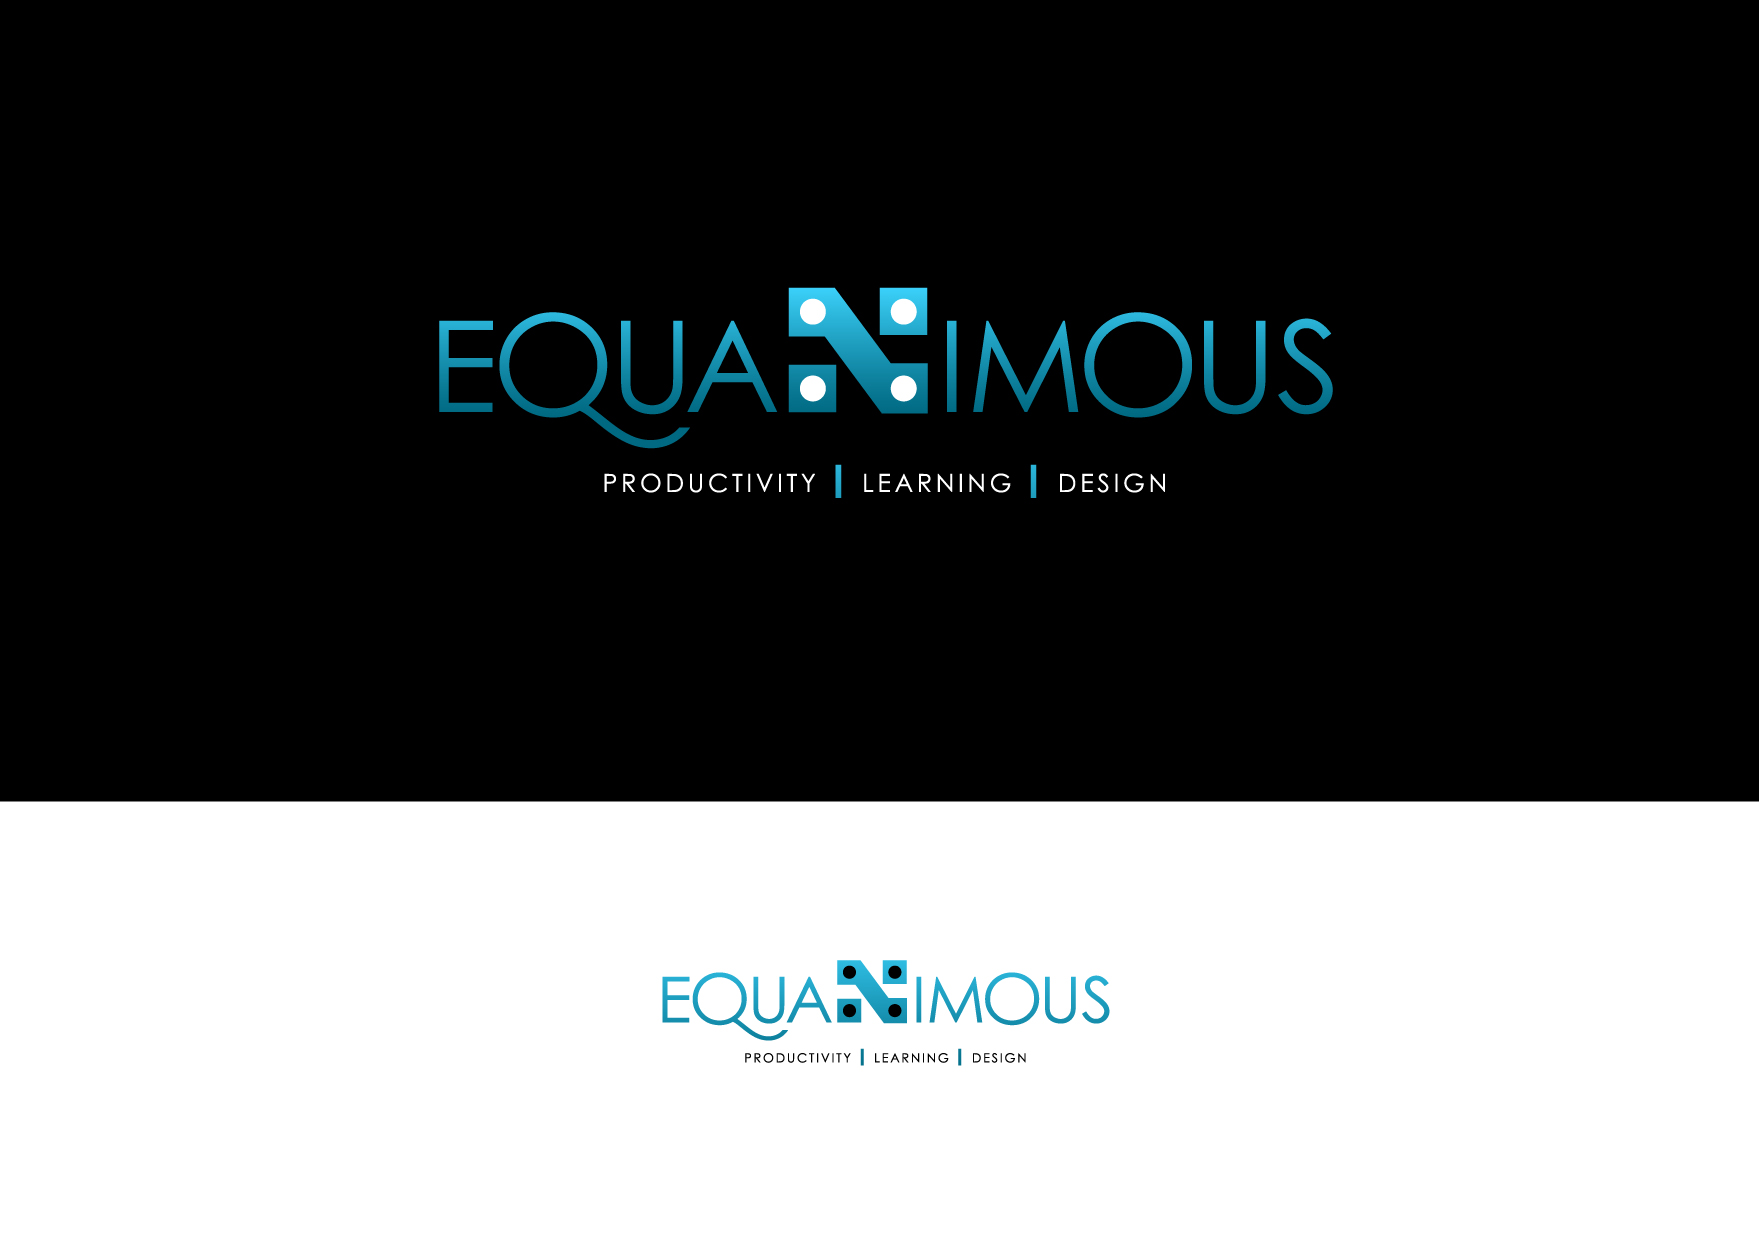 Logo Design by Wilfredo Mendoza - Entry No. 544 in the Logo Design Contest Logo Design : EQUANIMOUS : Productivity | Learning | Design.